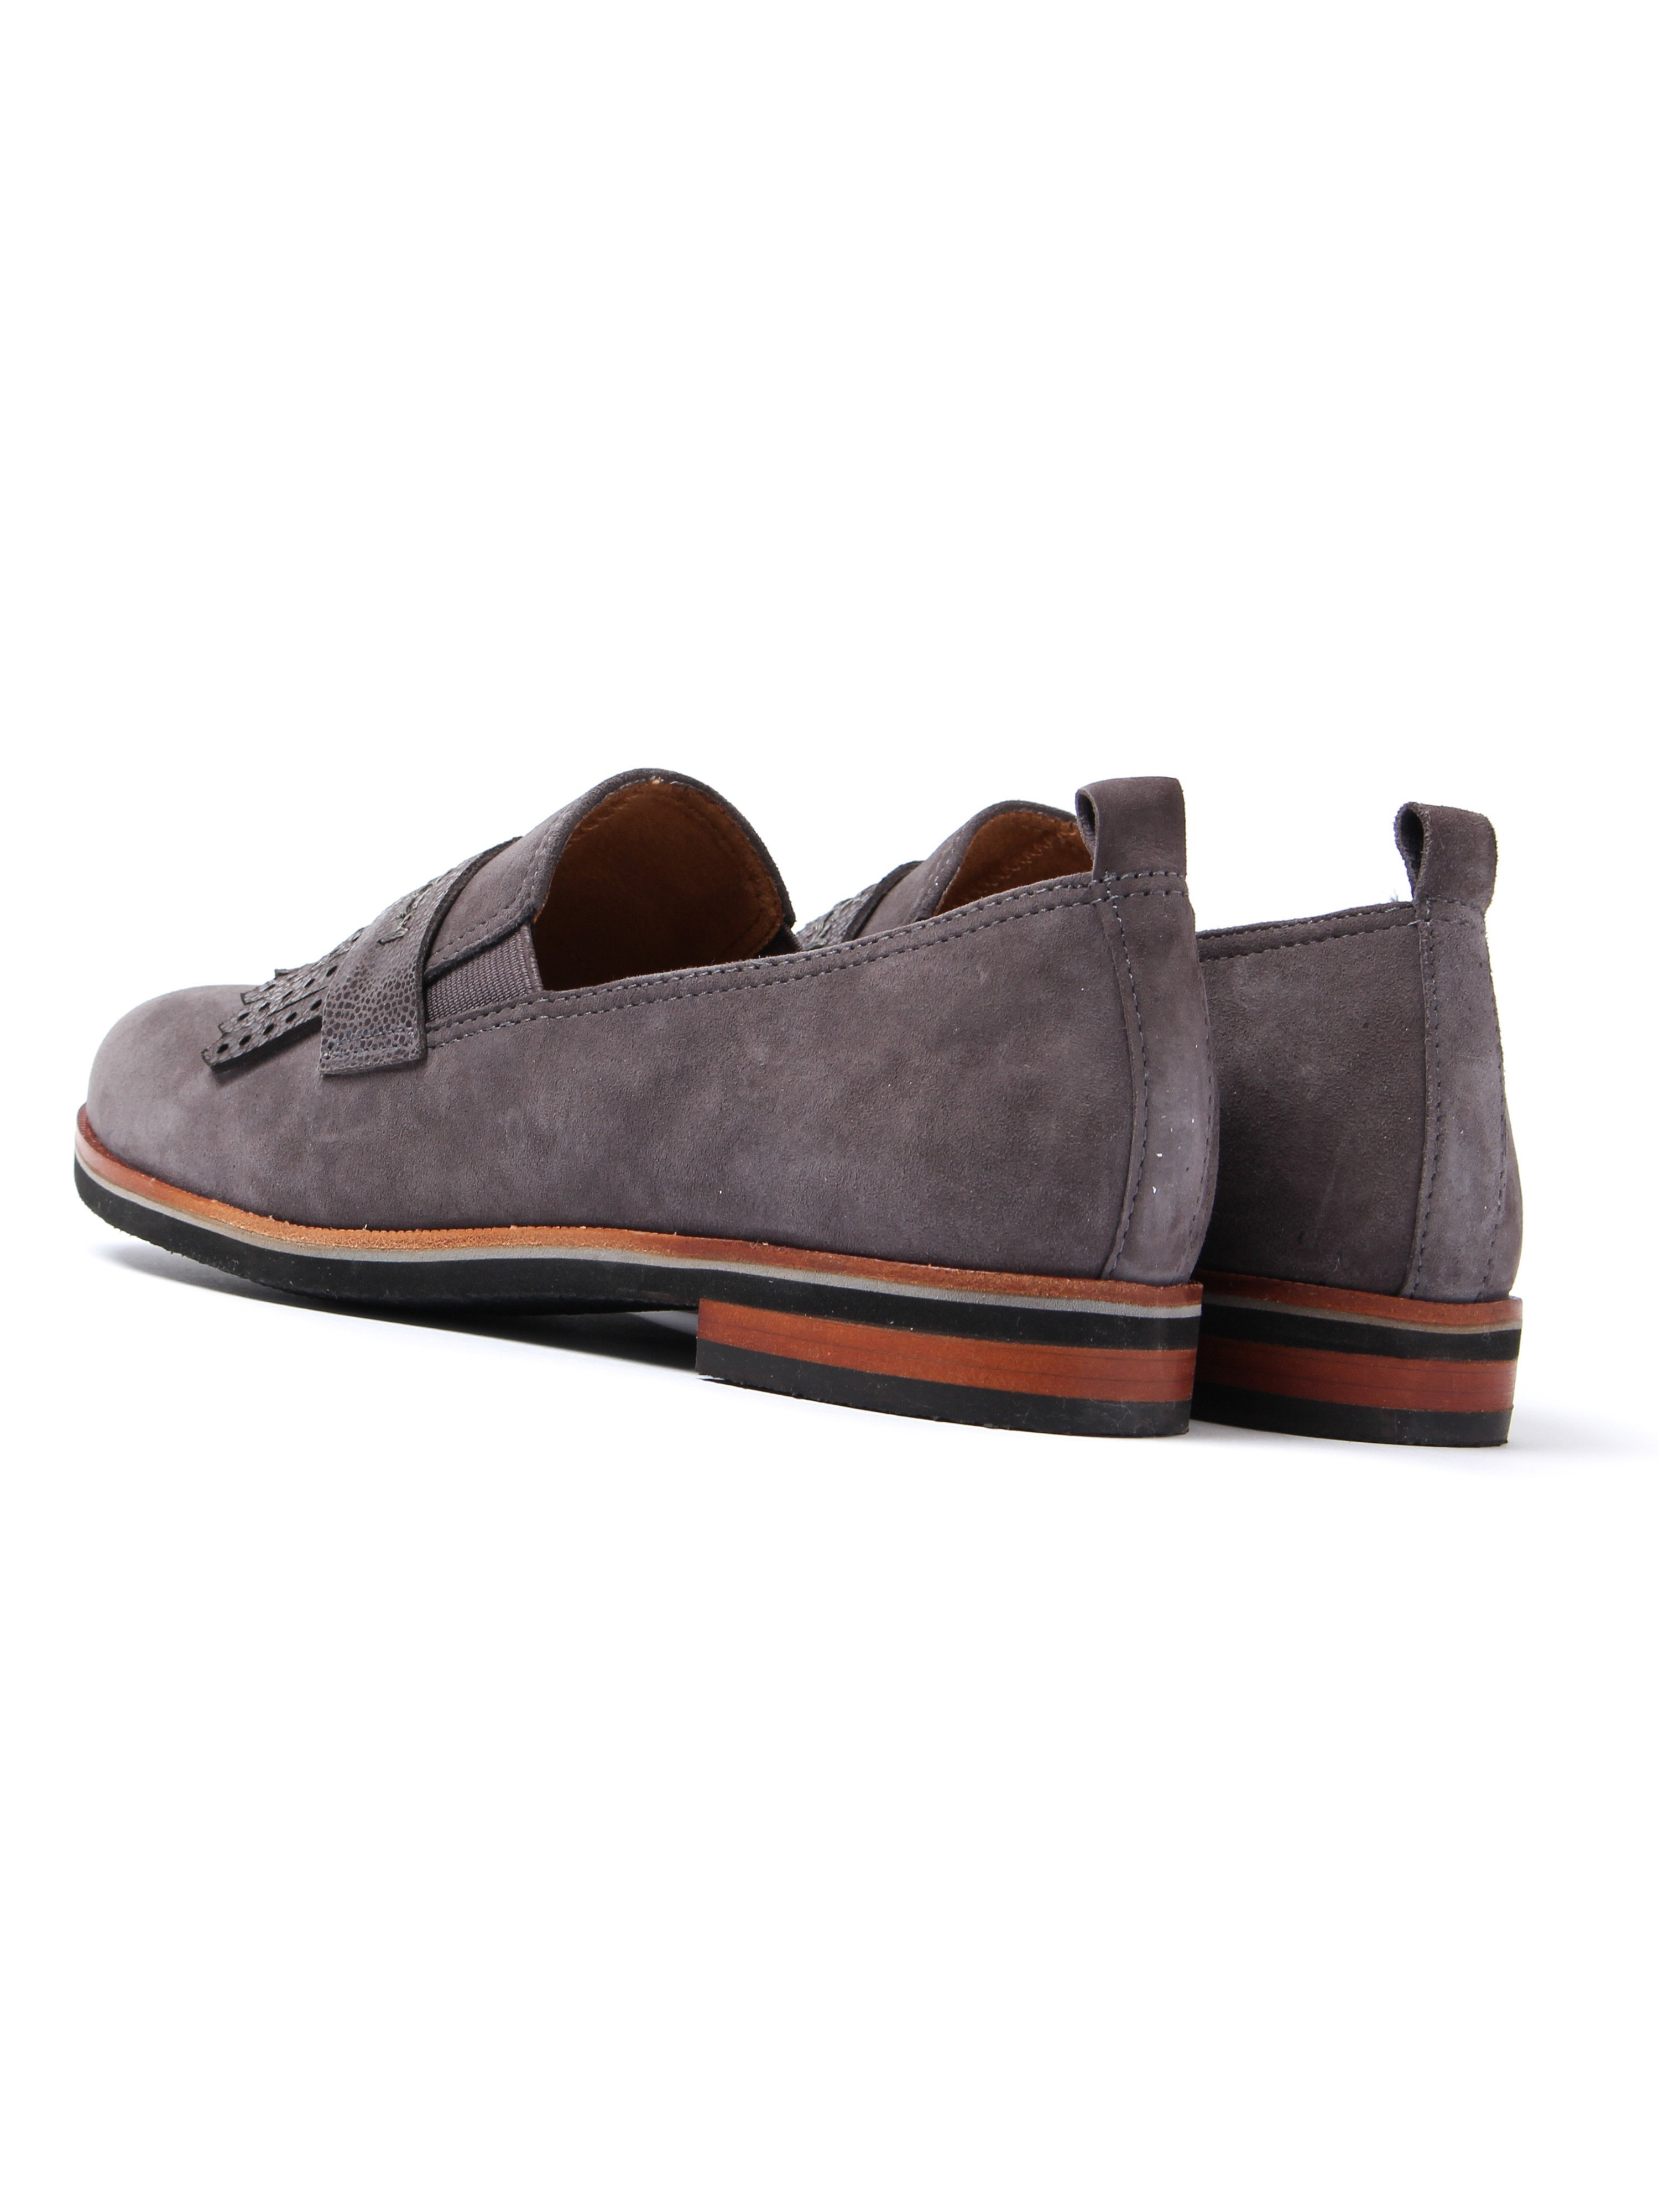 Caprice Women's Fringe Loafers - Grey Suede